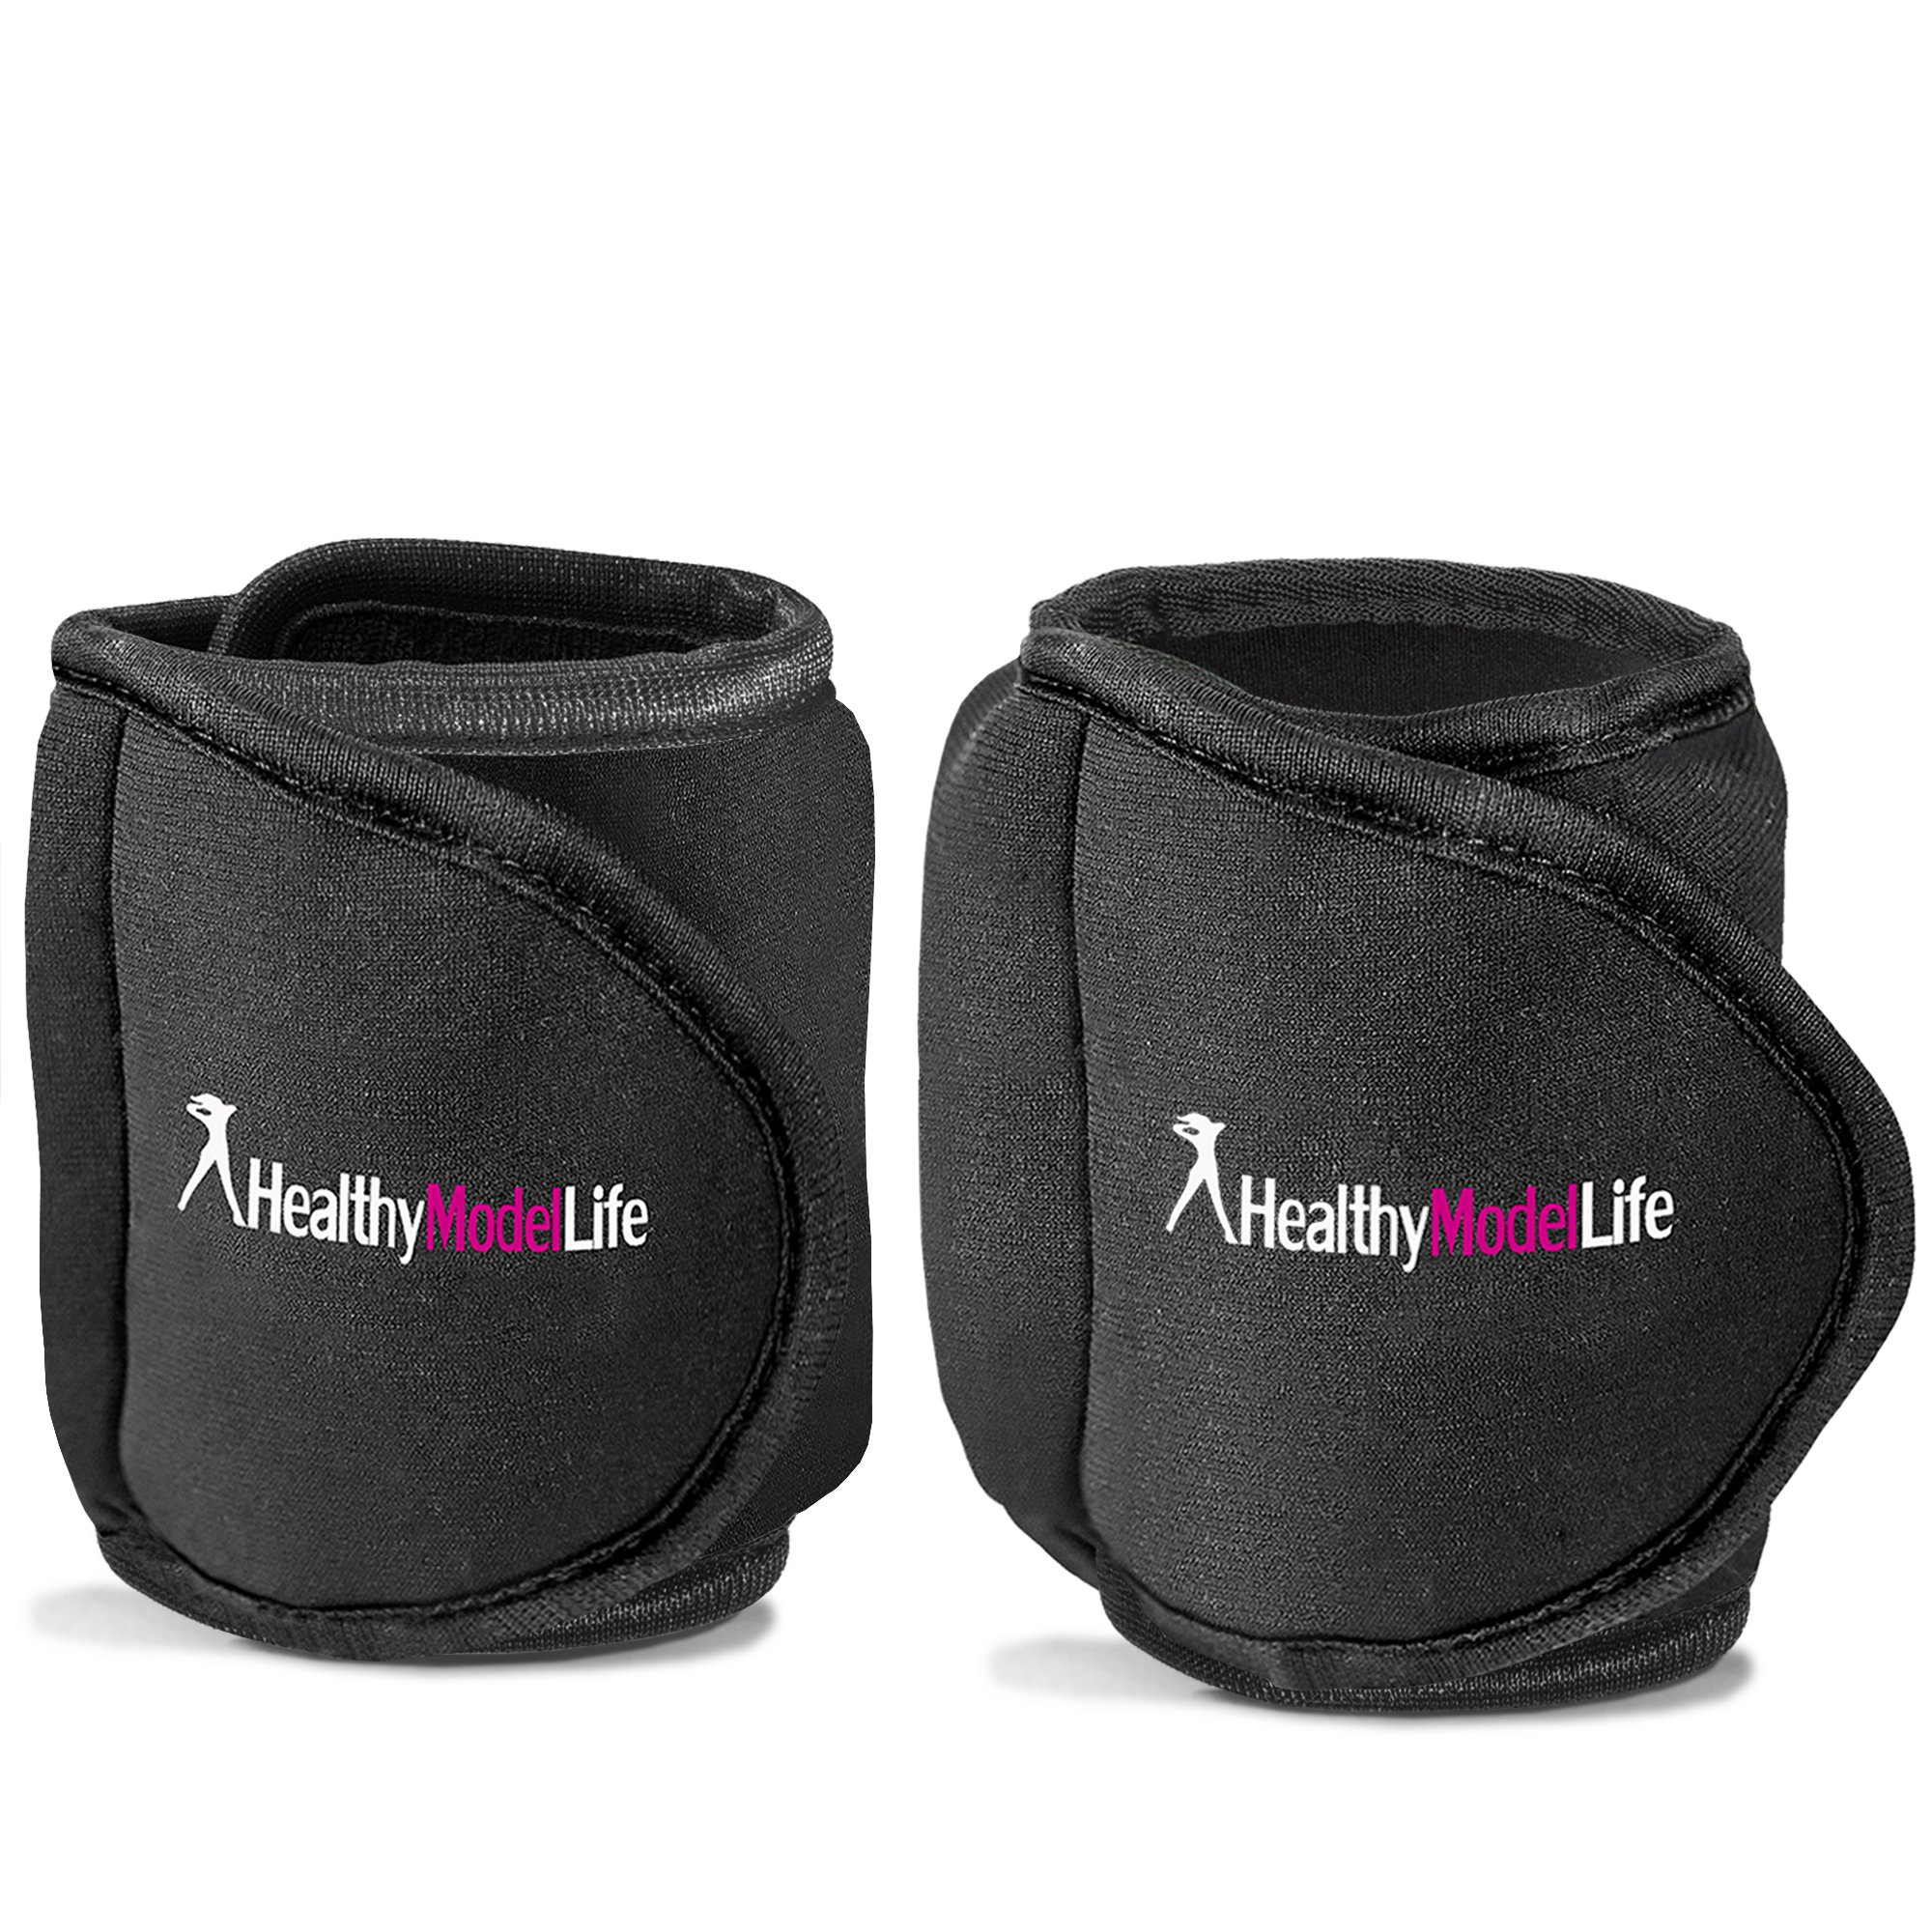 HEALTHYMODELLIFE Ankle Weights Set by Healthy Model Life (2 x 8lbs Cuffs) - 16lbs in Total